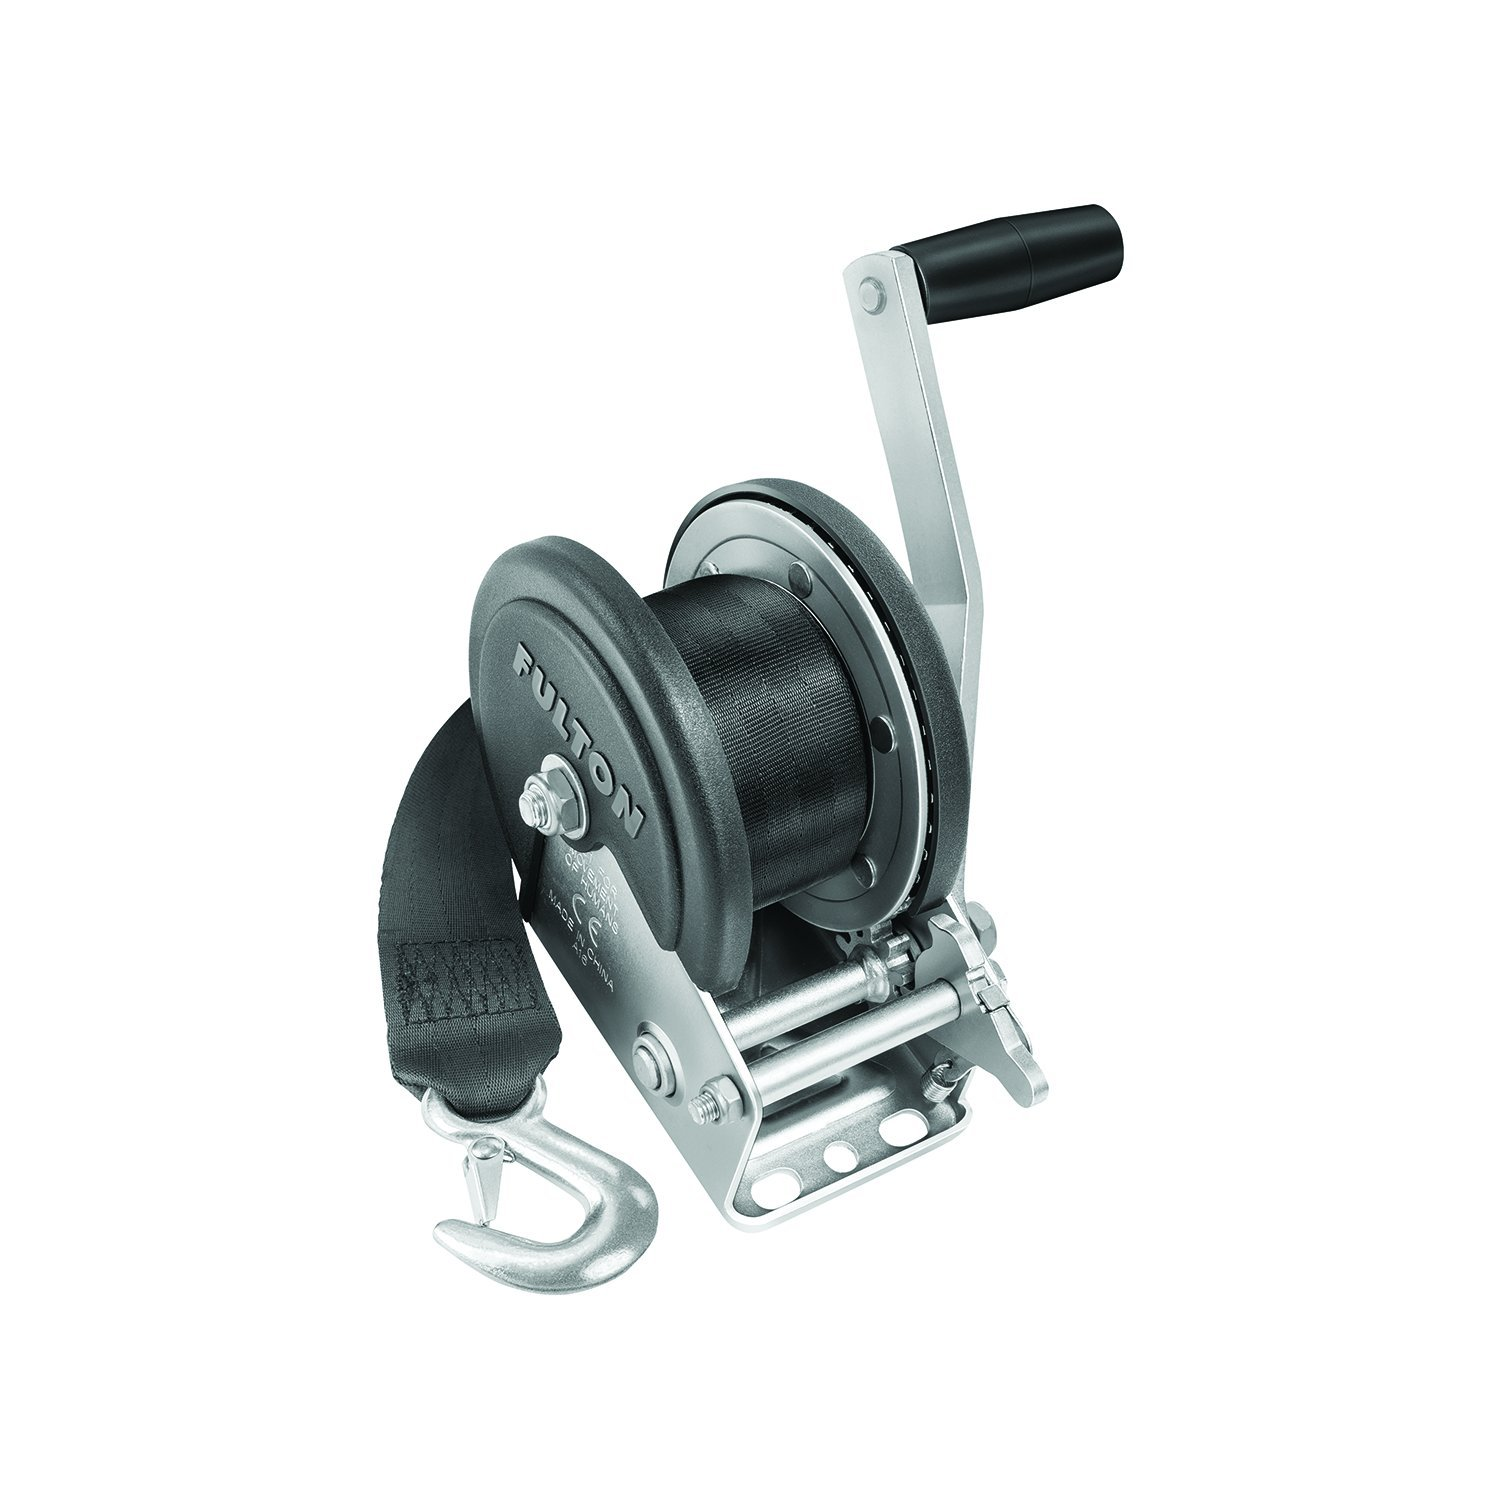 Fulton 142208 Single Speed Winch with 20' Strap and Cover-1500 lbs. Capacity